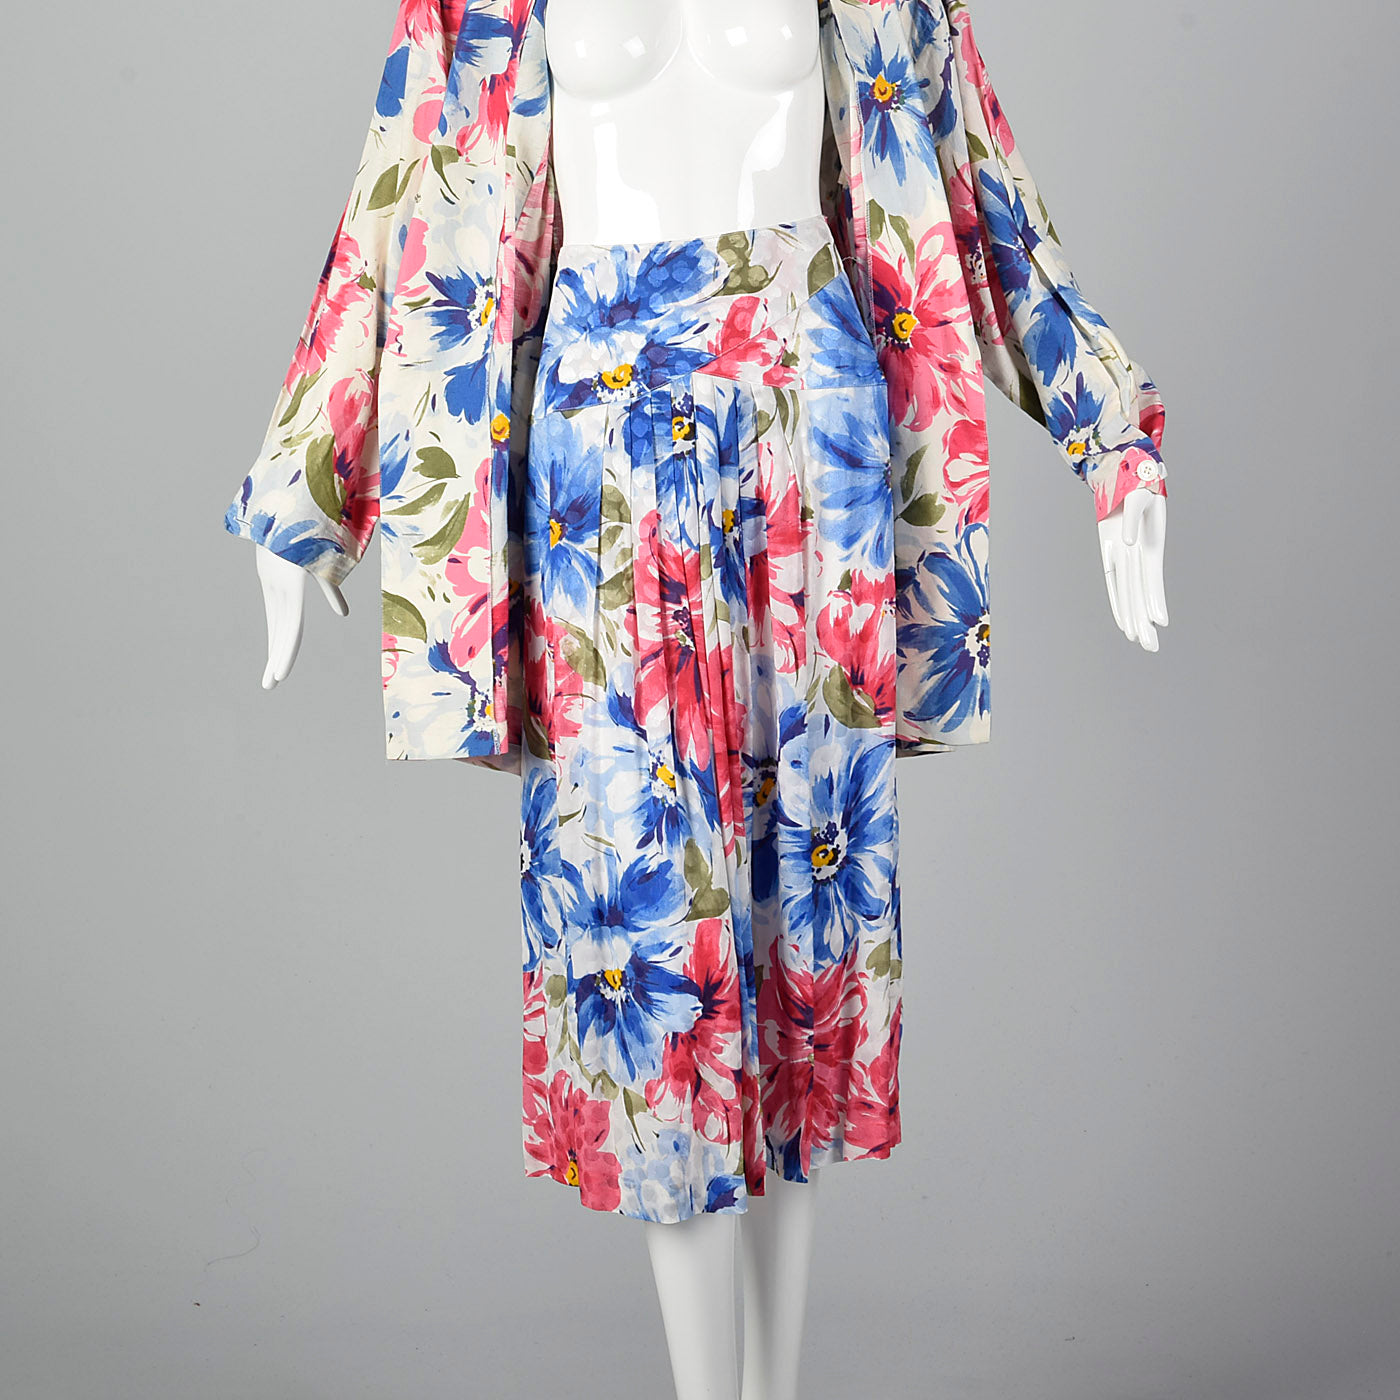 1980s Floral Print Skirt Suit with Oversized Blazer